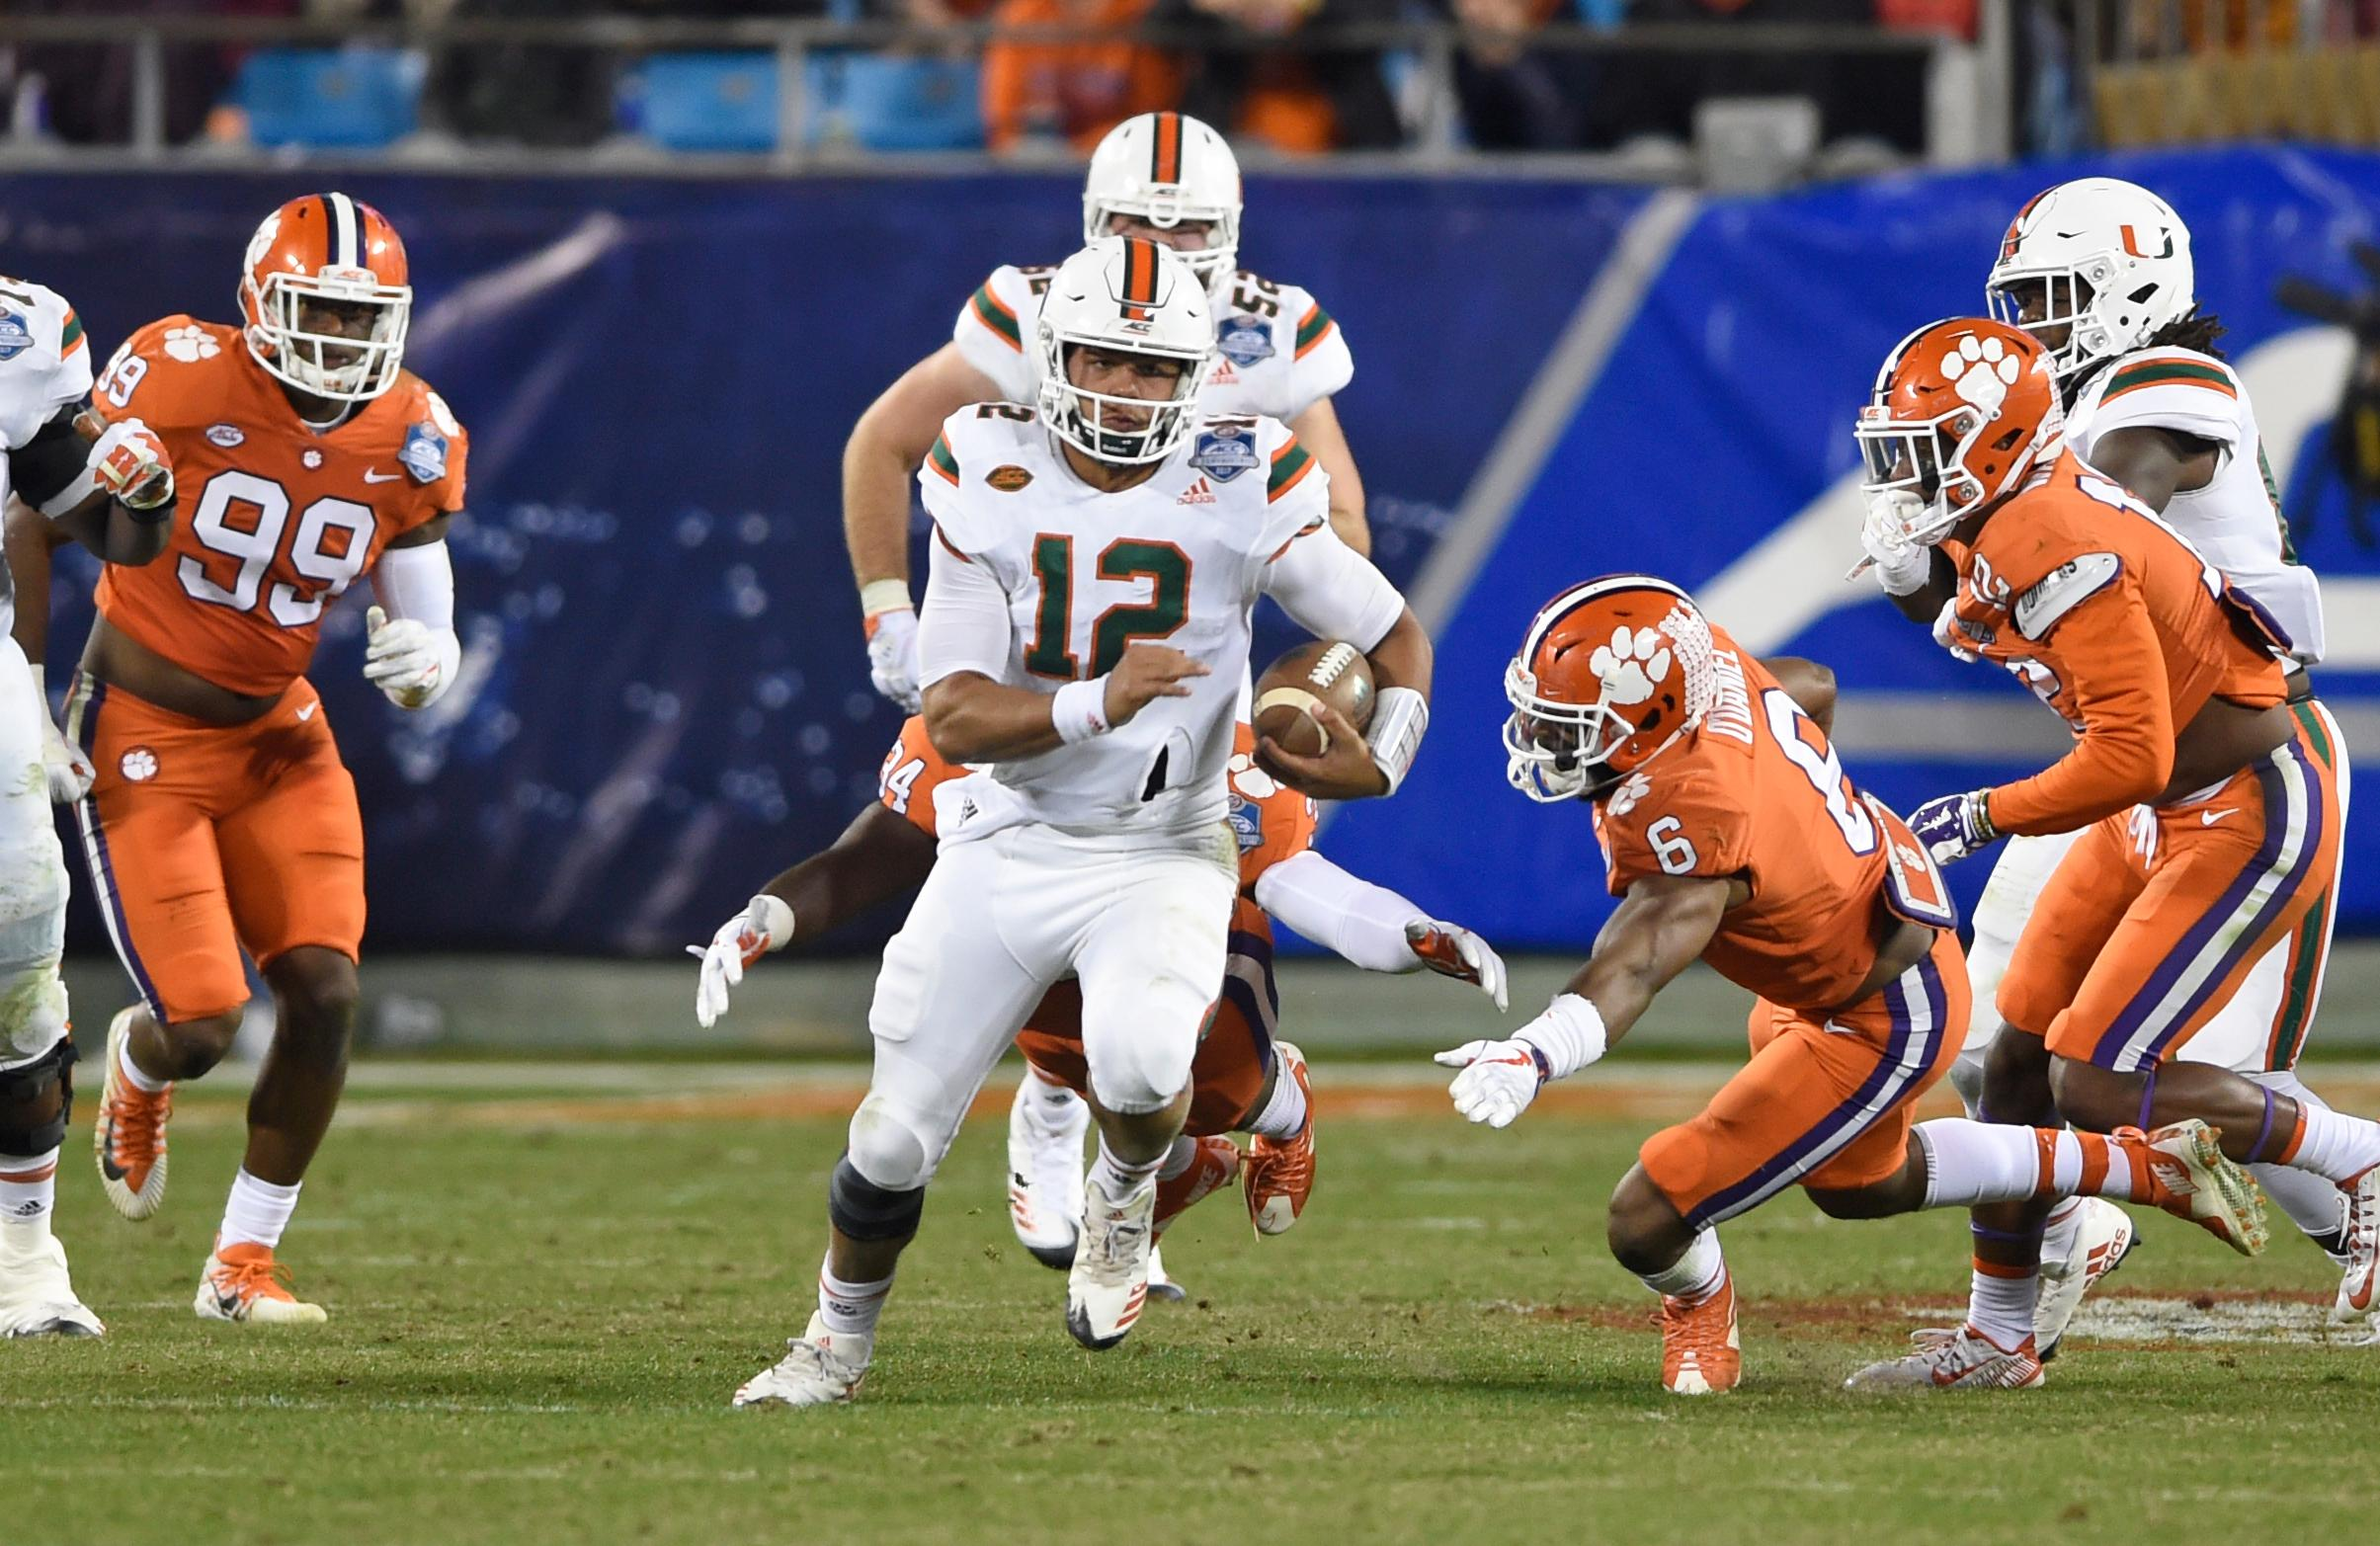 Miami's Malik Rosier (12) runs for a long gain against Clemson during the second half of the Atlantic Coast Conference championship NCAA college football game in Charlotte, N.C., Saturday, Dec. 2, 2017. (AP Photo/Mike McCarn)